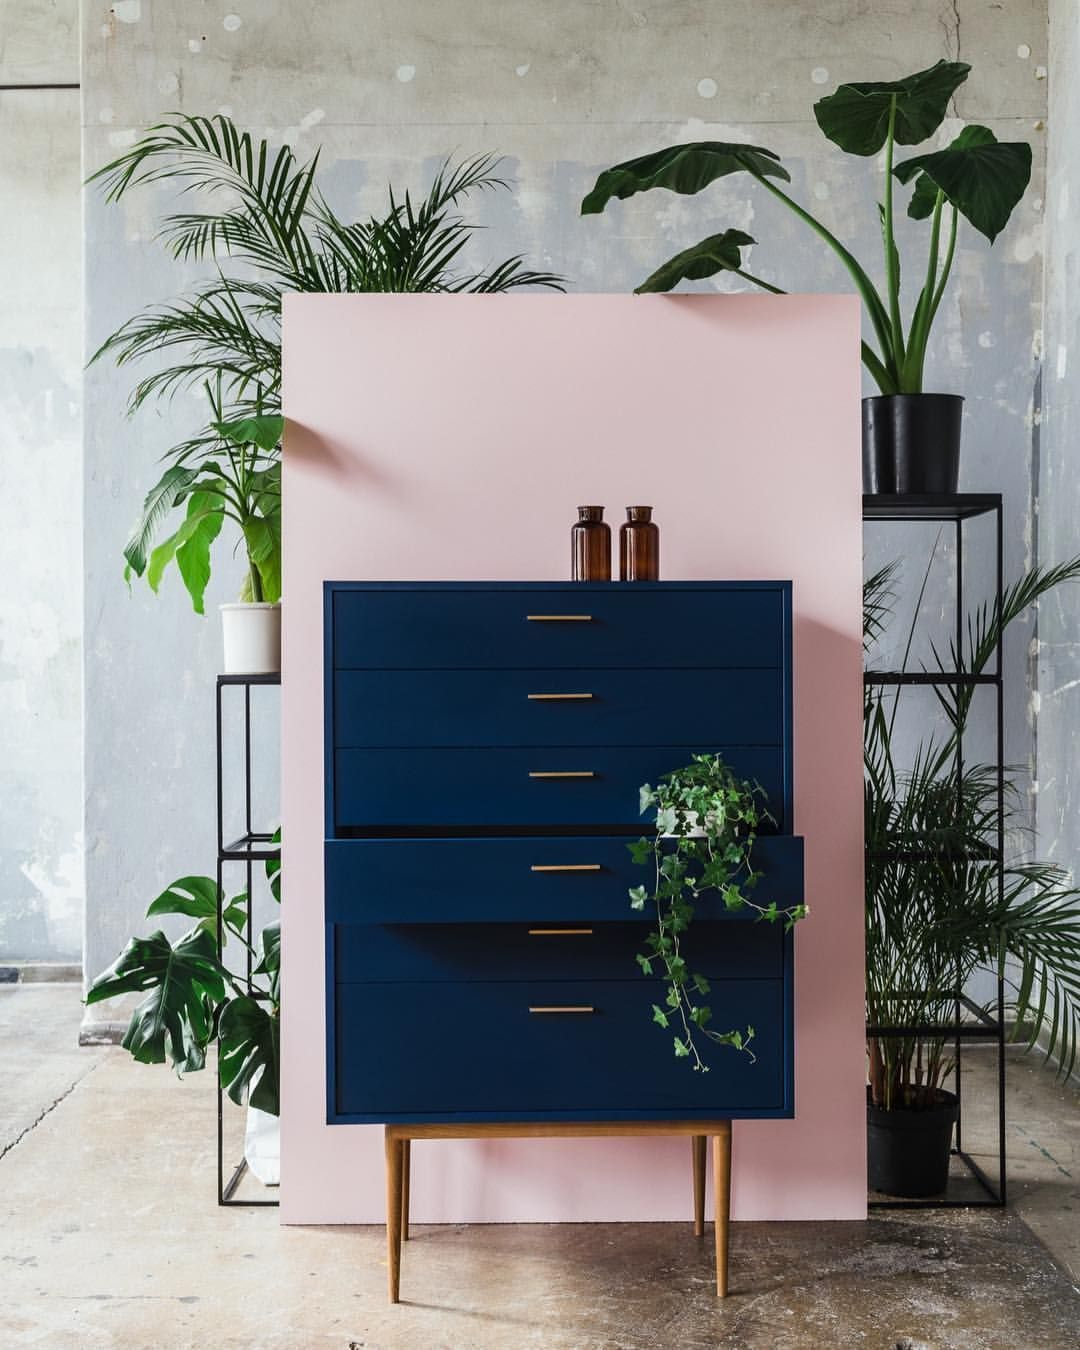 Pink wall with dark blue dresser. Home Decor Inspiration home decor, home inspiration, furniture, lounges, decor, bedroom, decoration ideas, home furnishing, inspiring homes, decor inspiration. Modern design. Minimalist decor. White walls. Marble countertops, marble kitchen, marble table. Contemporary design. Mid-century modern design. Modern rustic. Wood accents. Subway tile. Moroccan rug. #modernhomedesigninspiration #homedecor #rusticdesignstyle